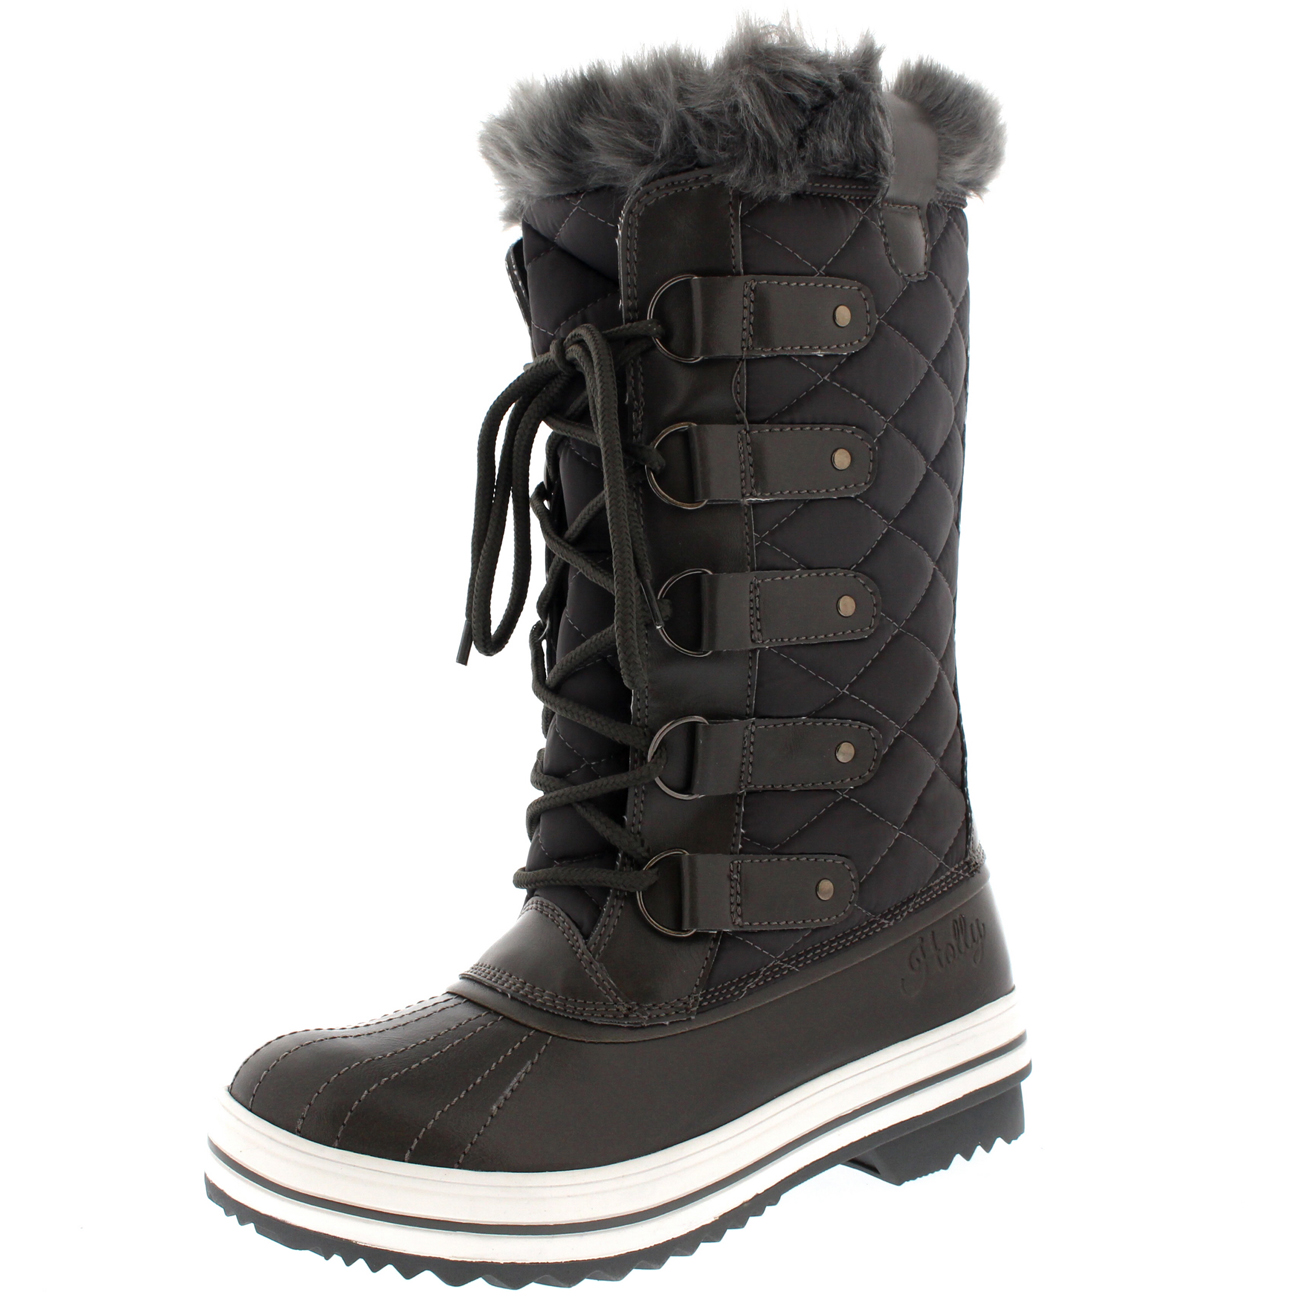 Ladies Snow Boot Nylon Tall Winter Waterproof Fur Lined Warm Rain ...